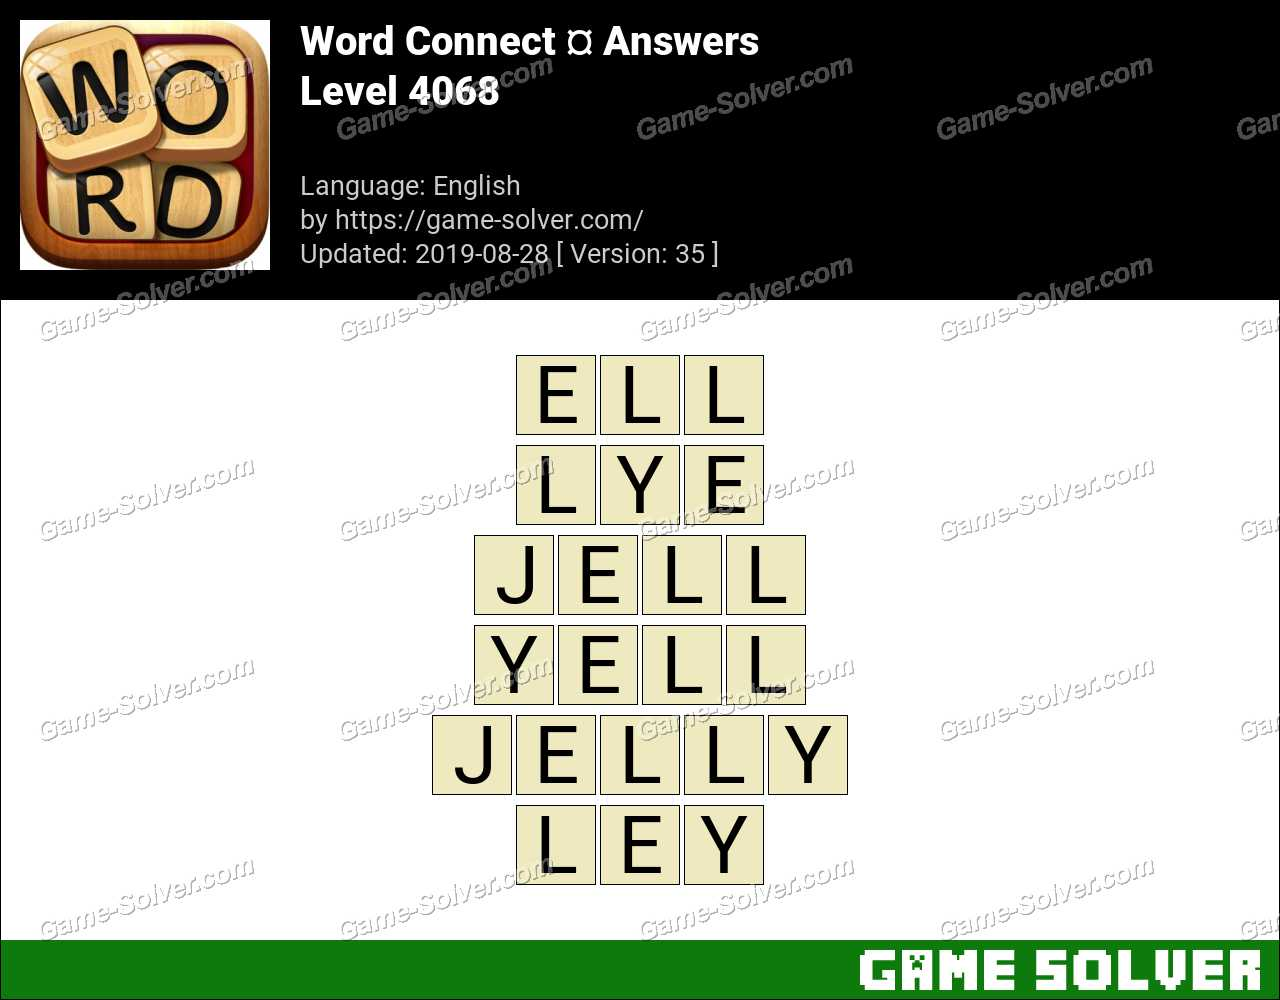 Word Connect Level 4068 Answers